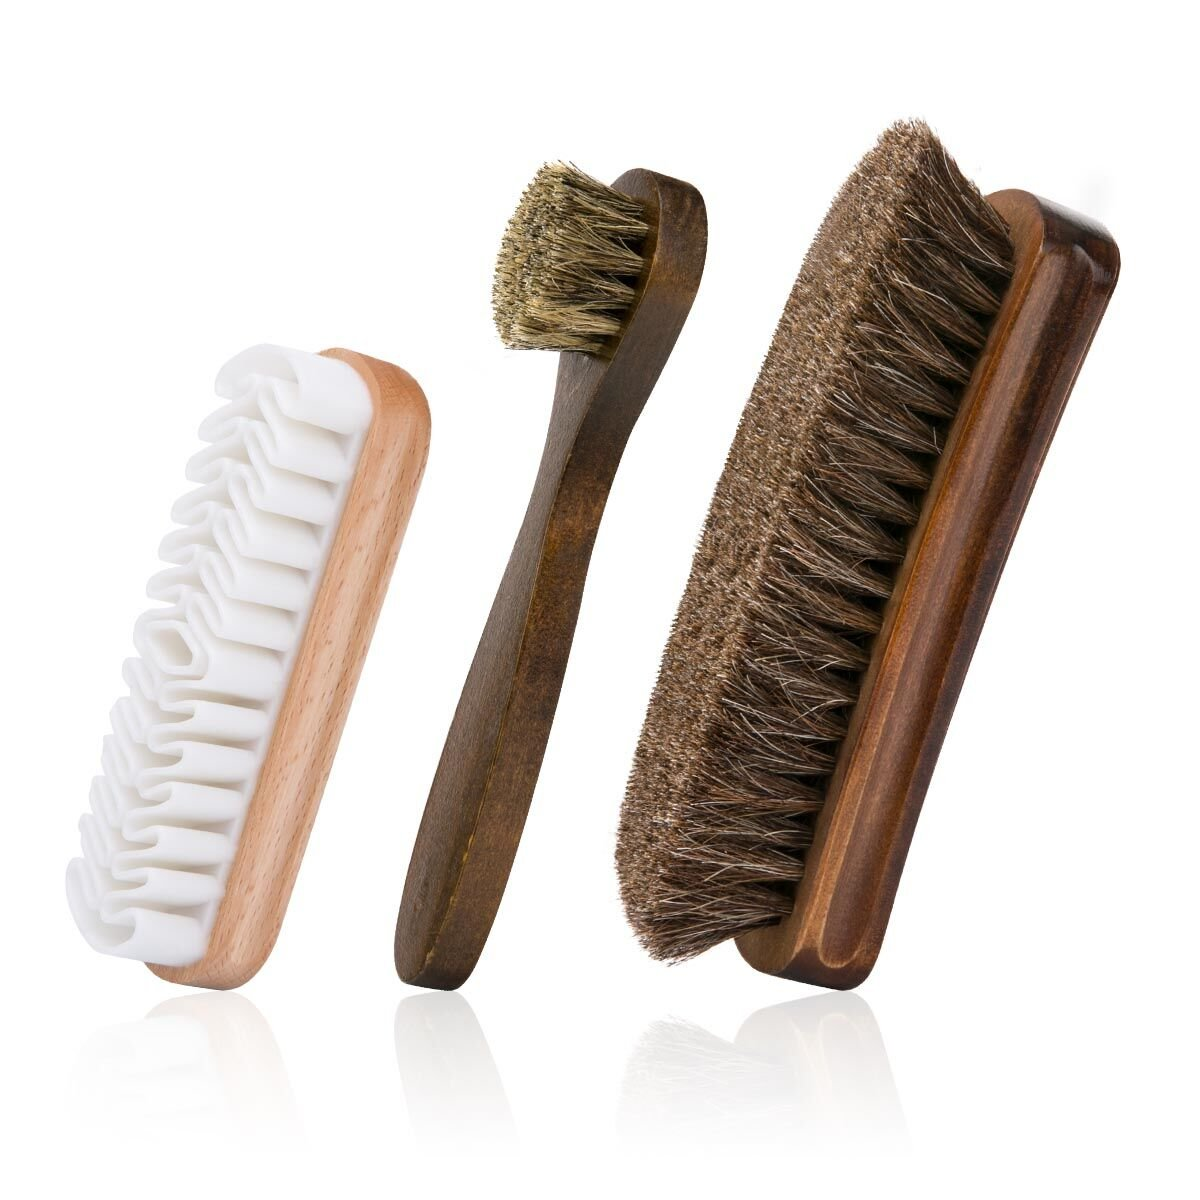 Foloda Shoe Brush with 100% Horsehair Bristles,Shoe Dauber,Suede Shoes Brush for Shoes,Leather, Boot